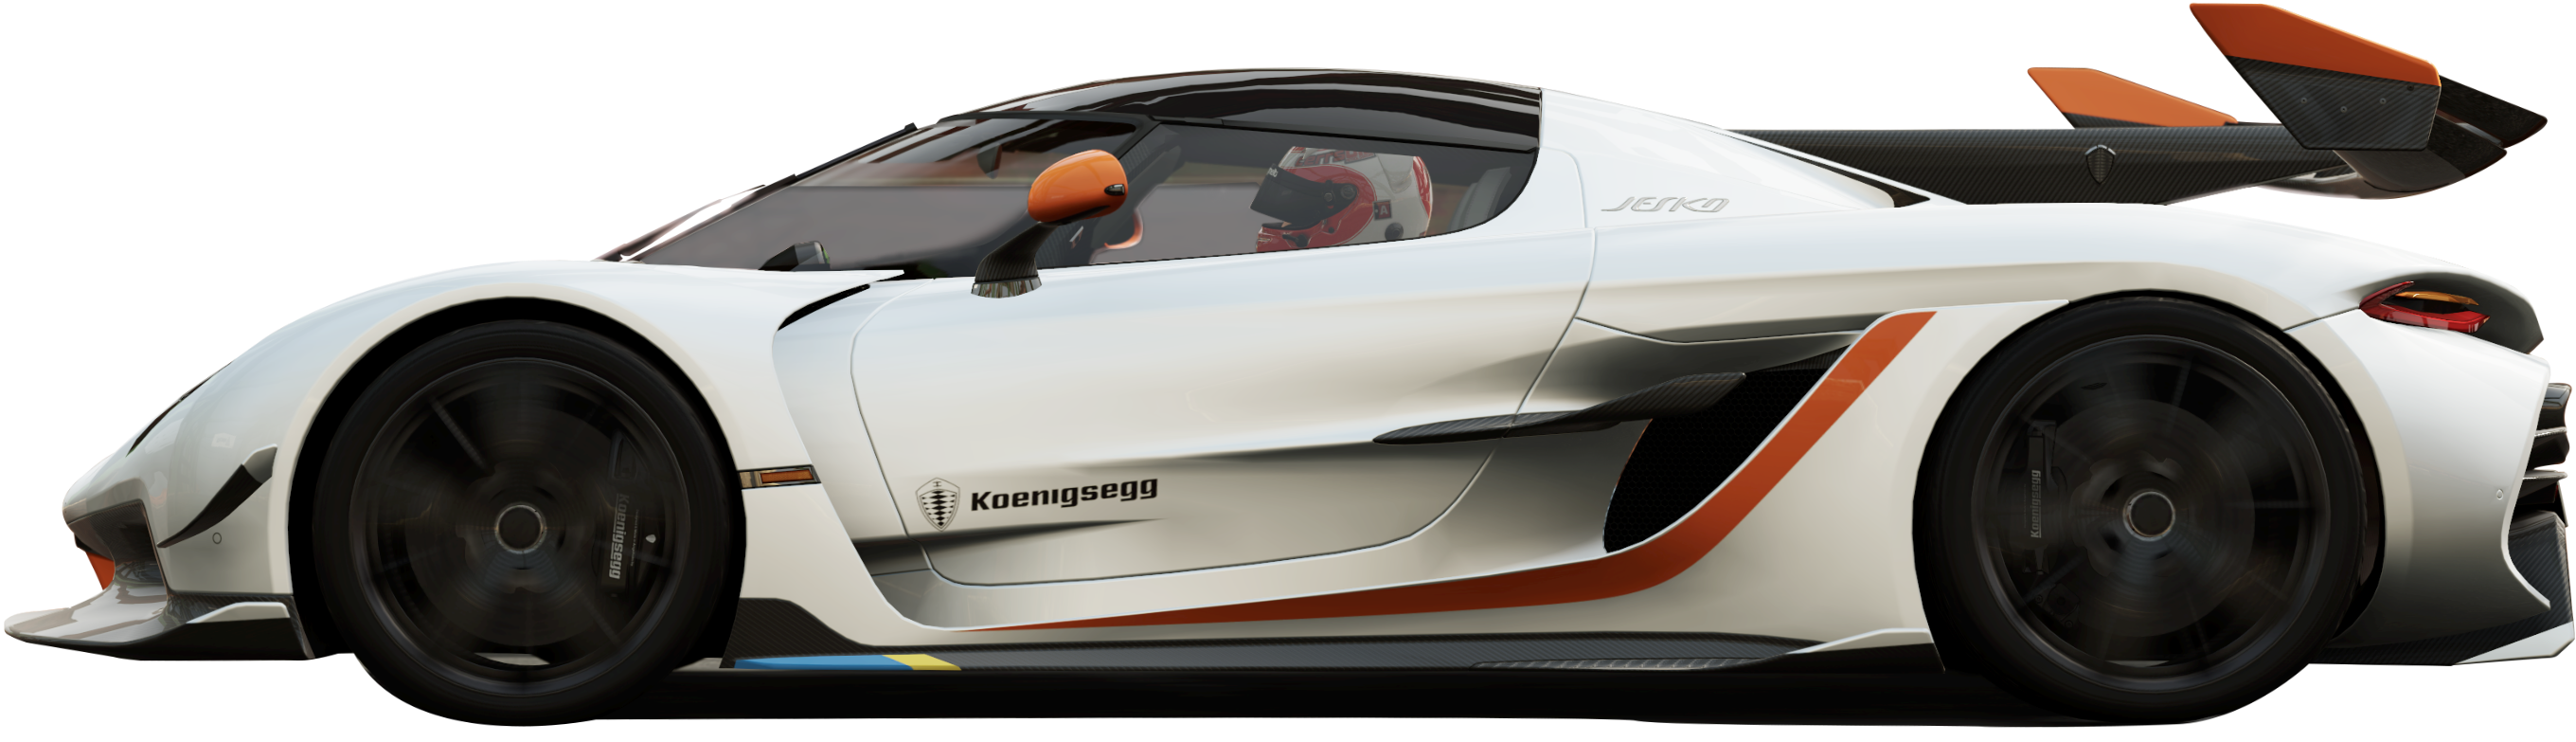 Koenigsegg Jesko side view